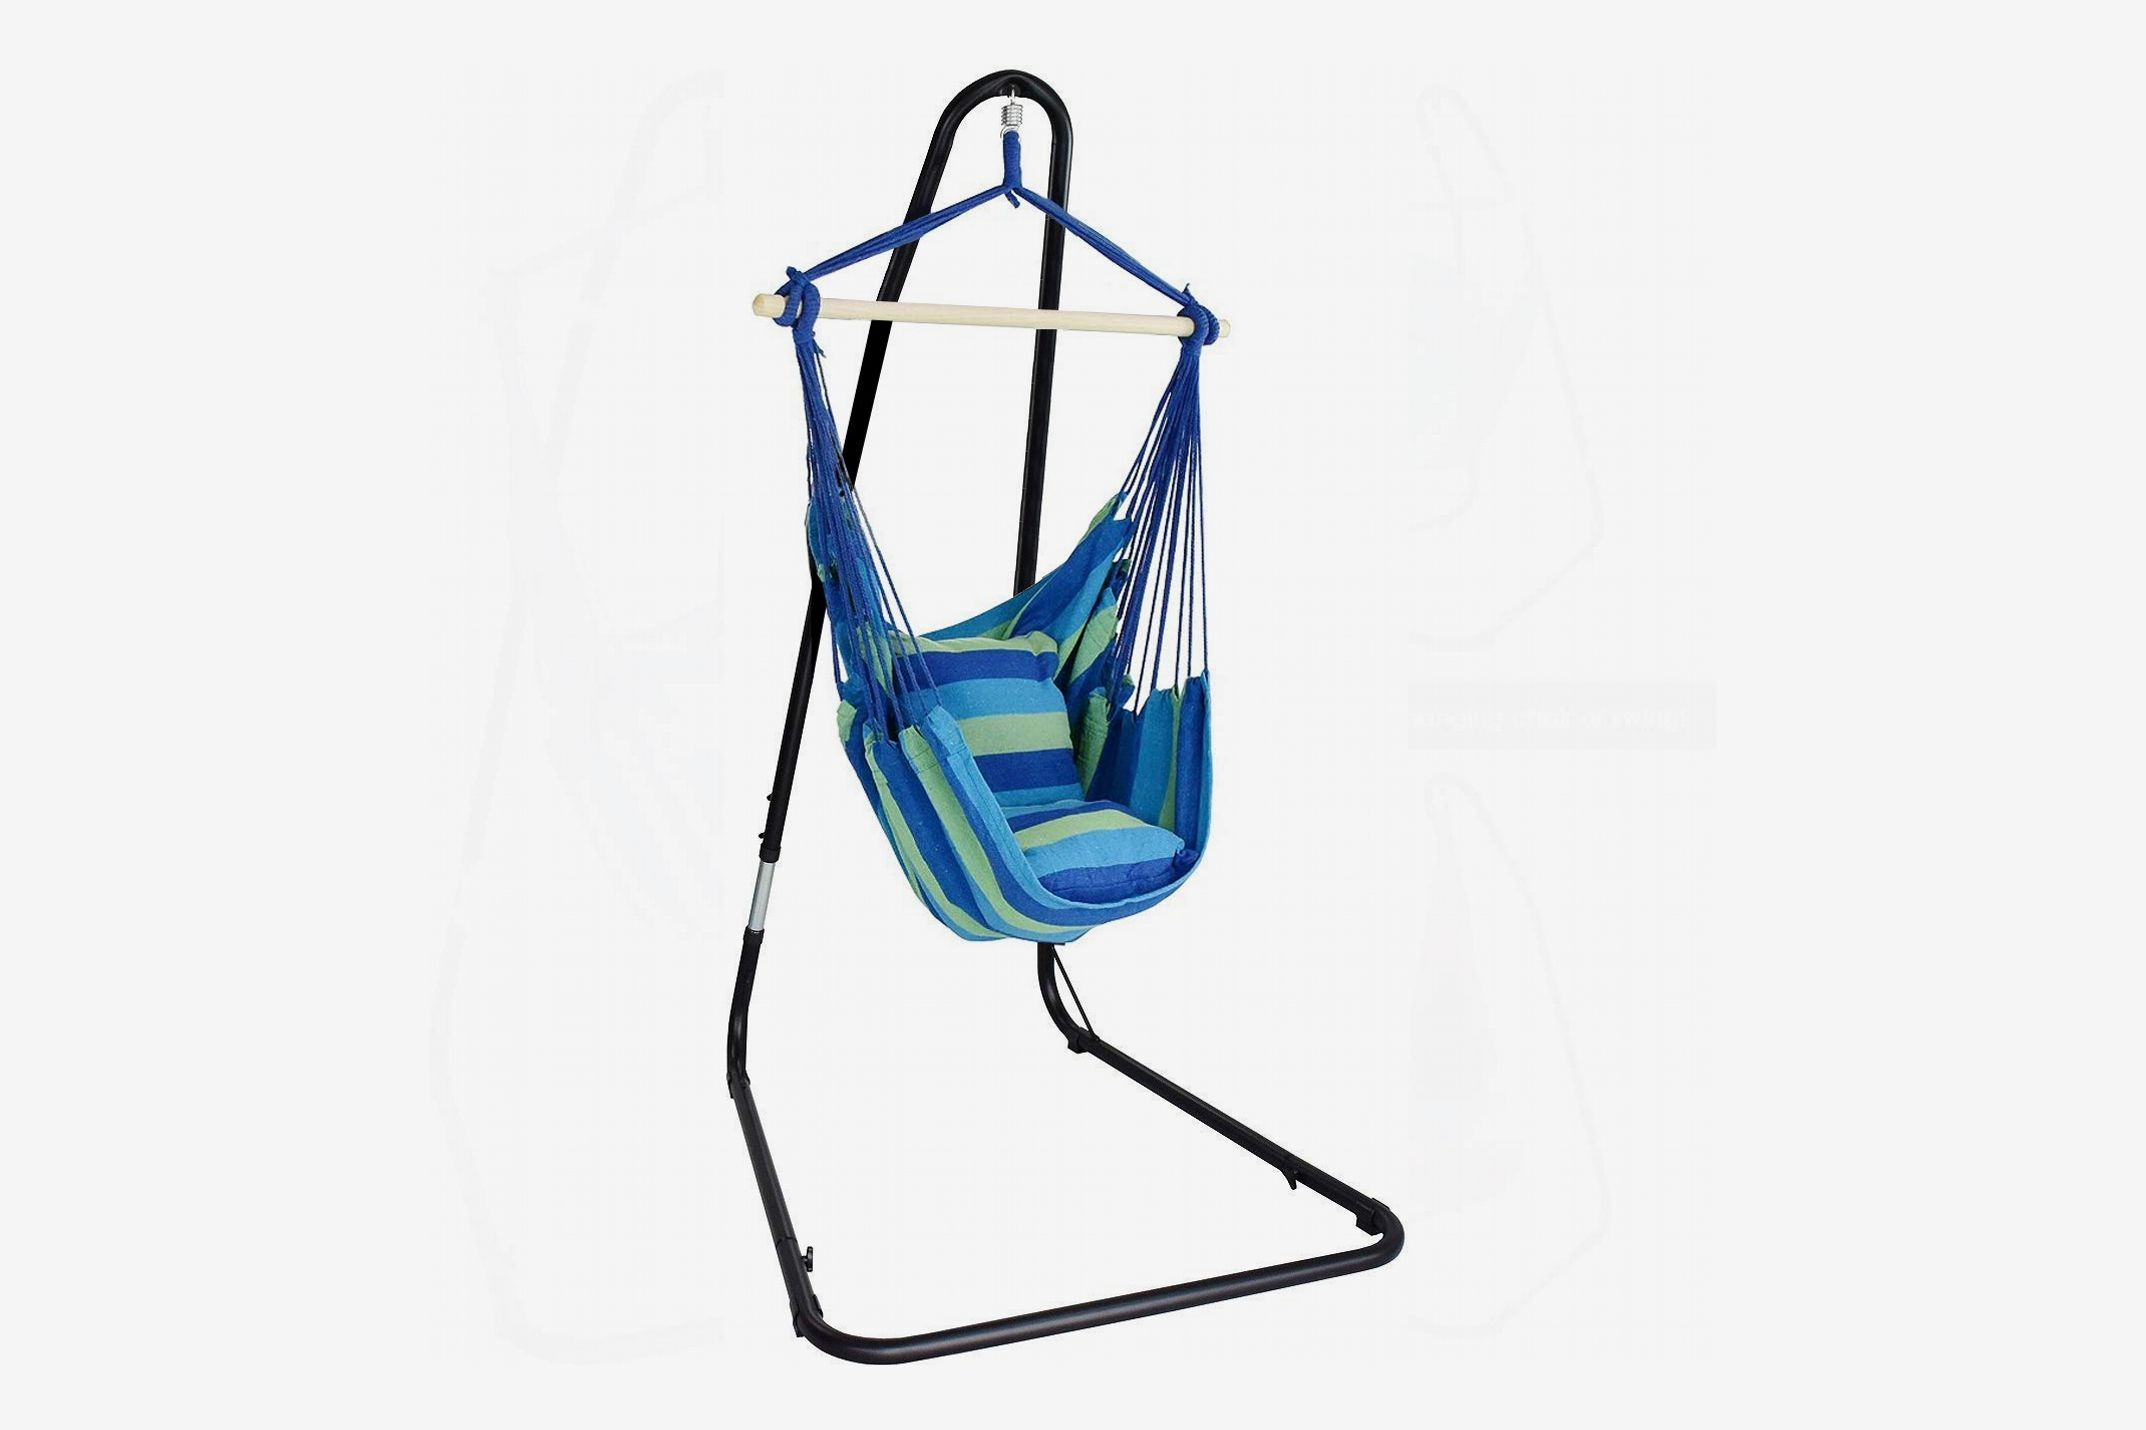 Sorbus Hanging Rope Hammock Chair Swing Seat with Adjustable Stand